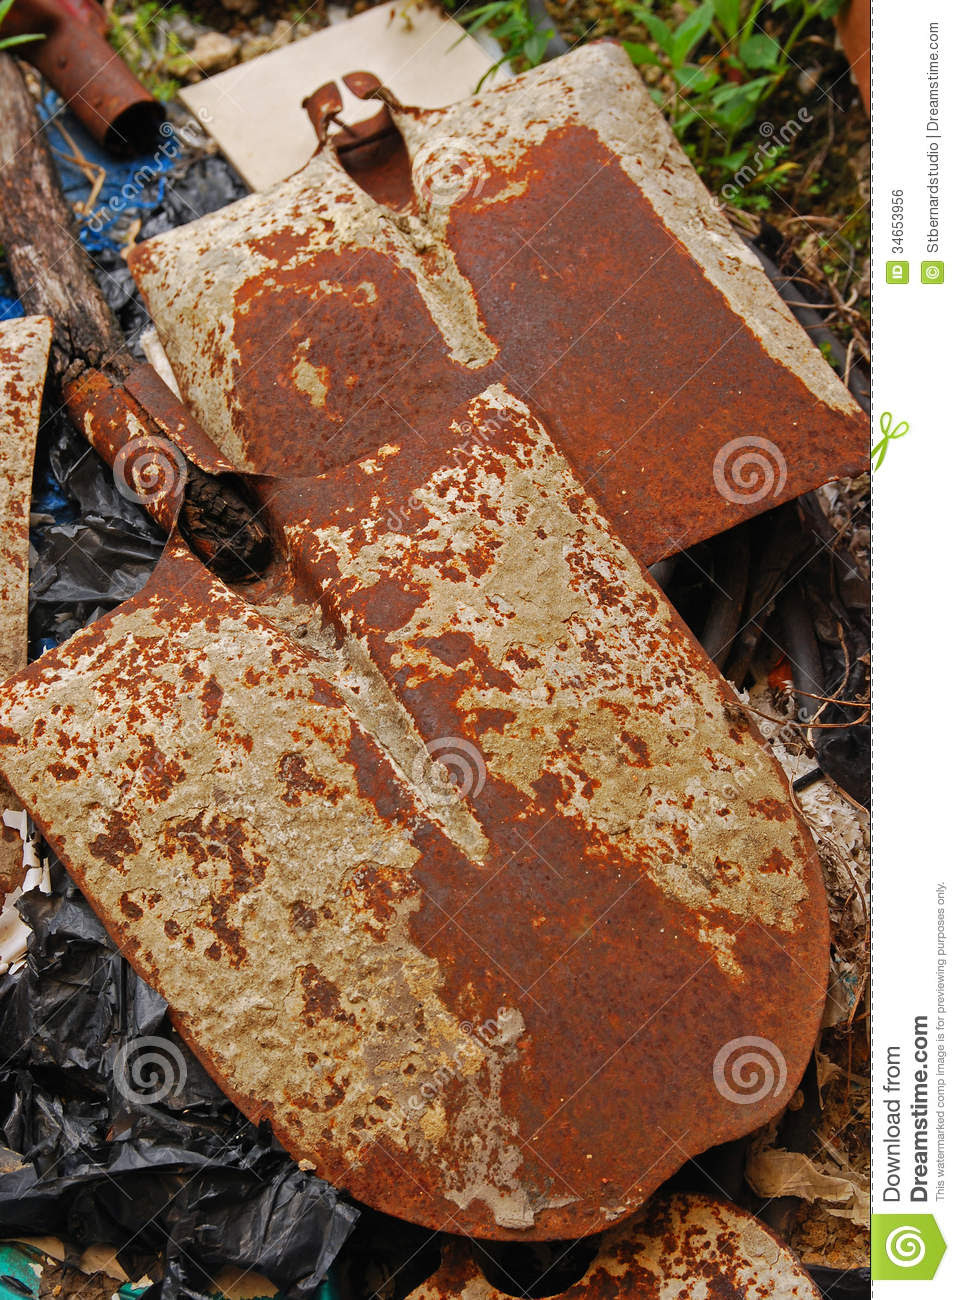 Unwanted Old Items Like Hoe At Home Outdoor Garden Royalty Free ...